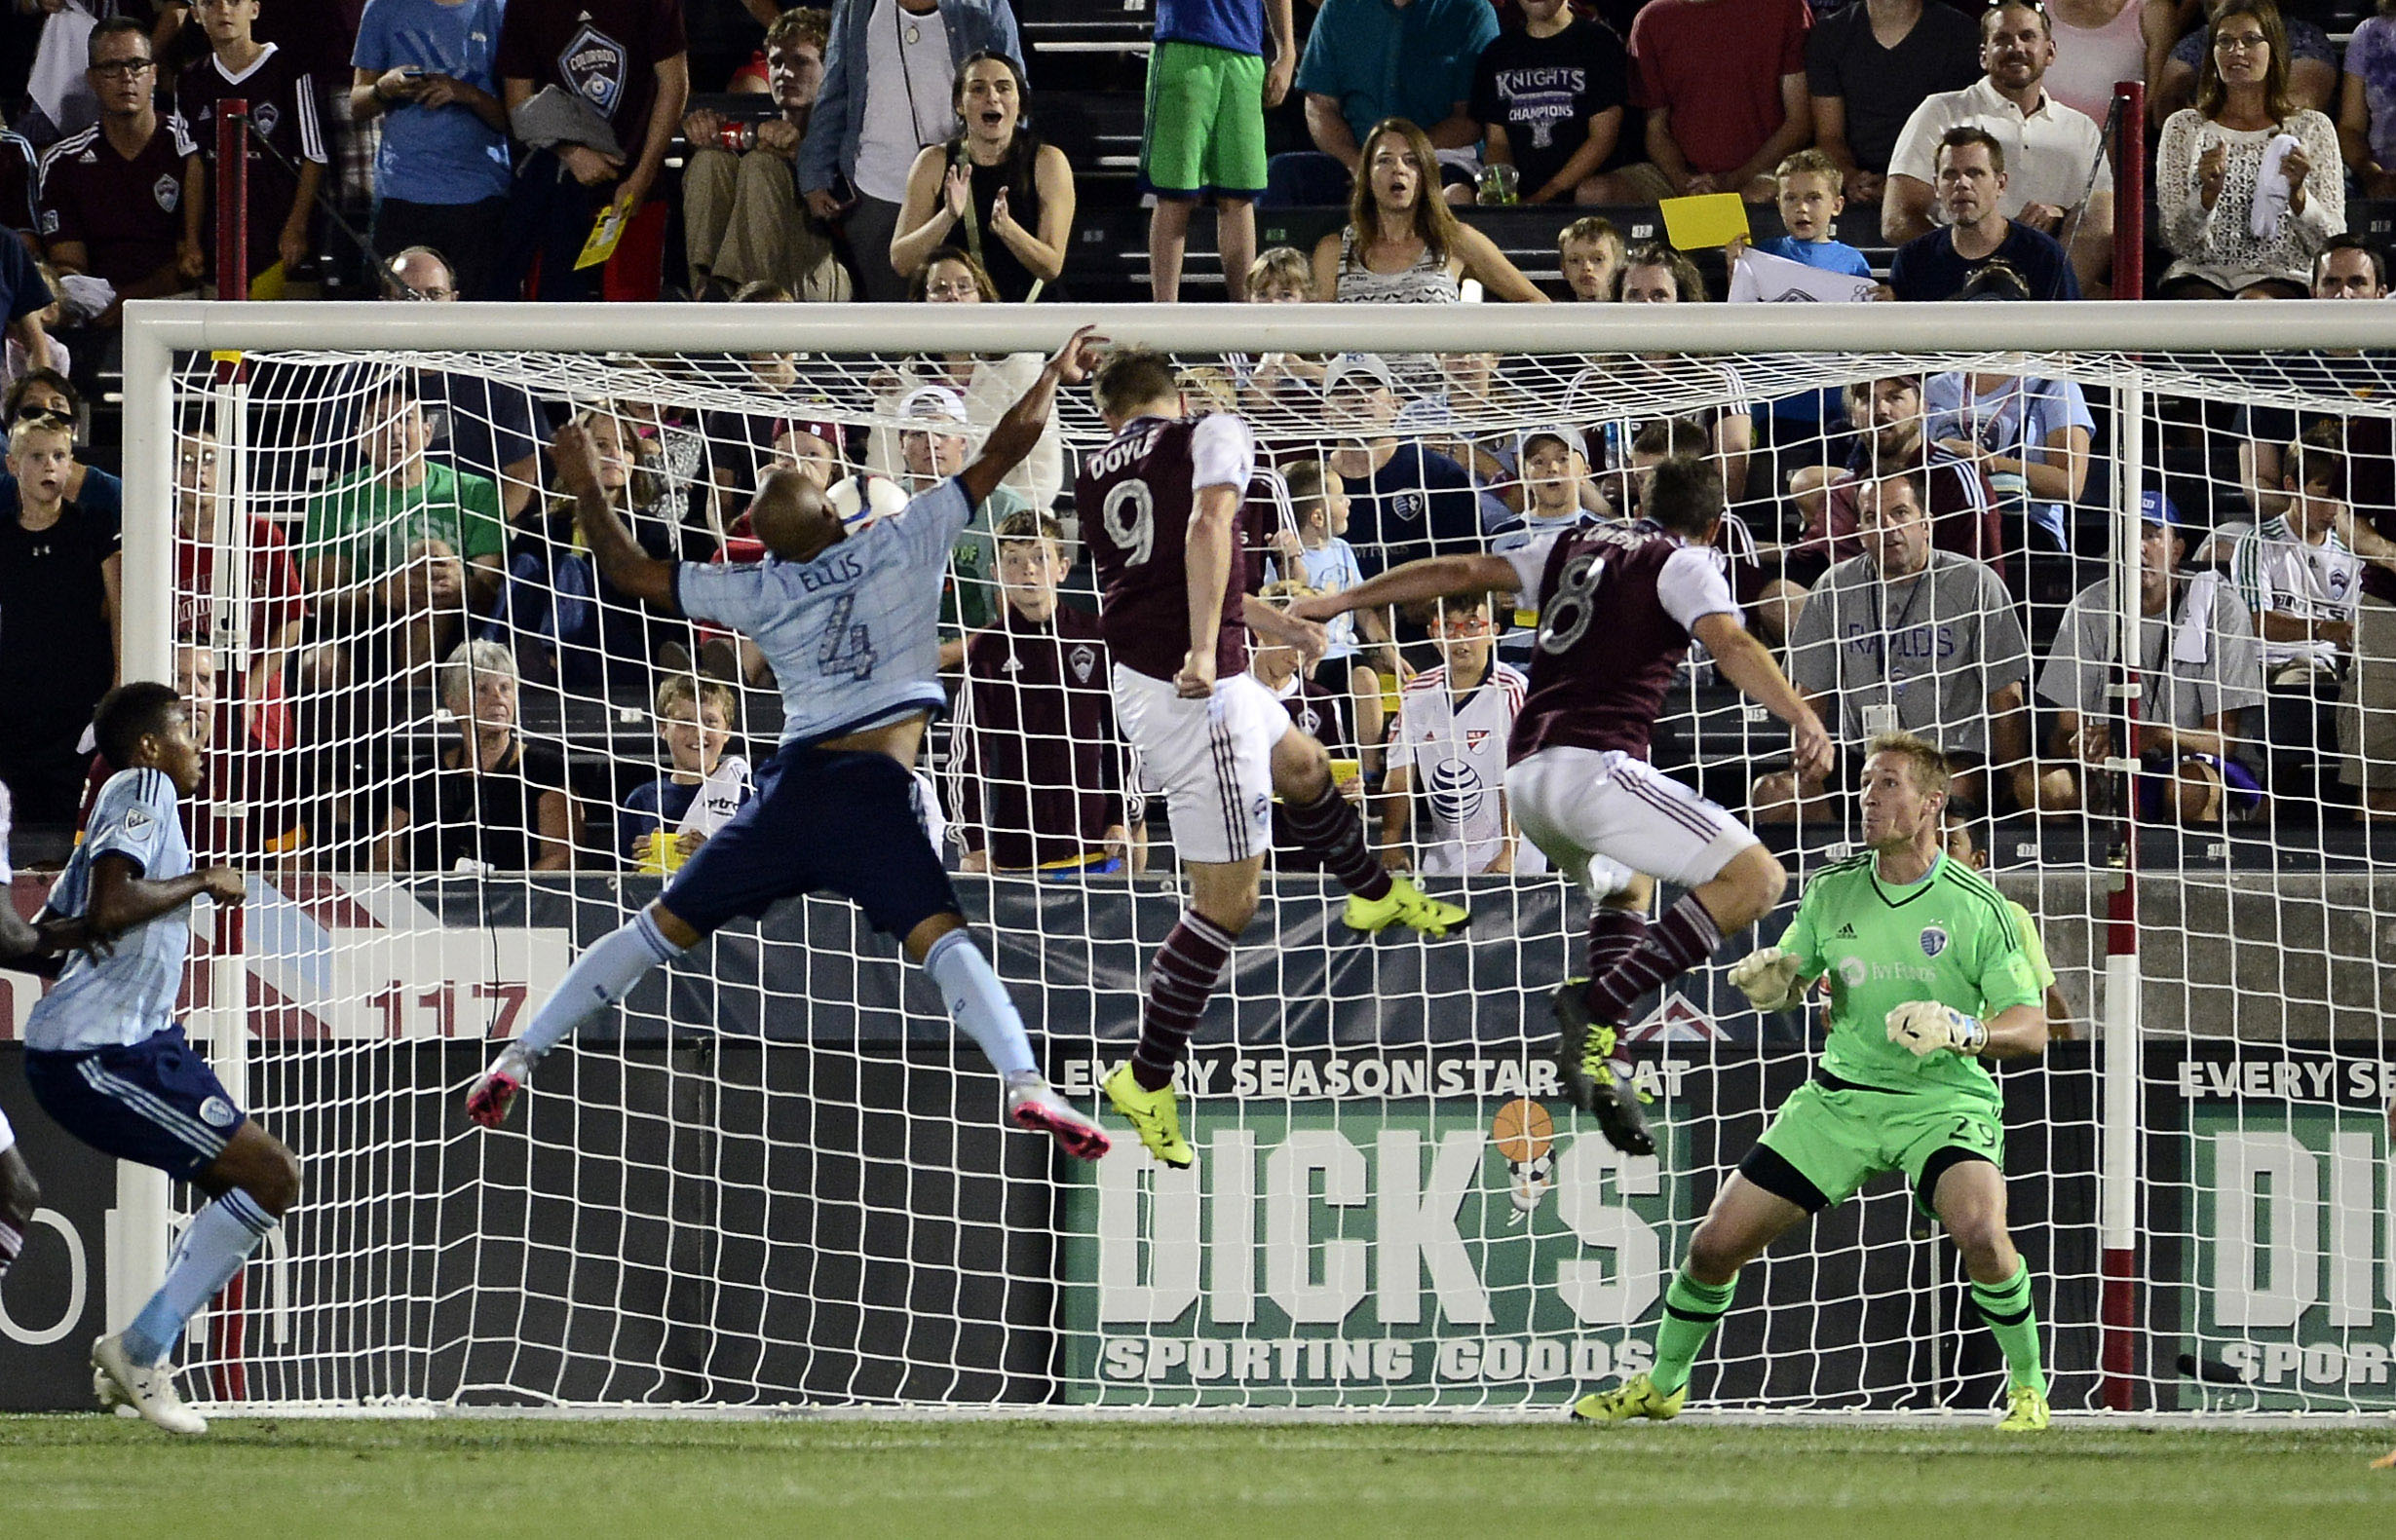 Kevin Doyle heads home the game winner versus Sporting Kansas City.